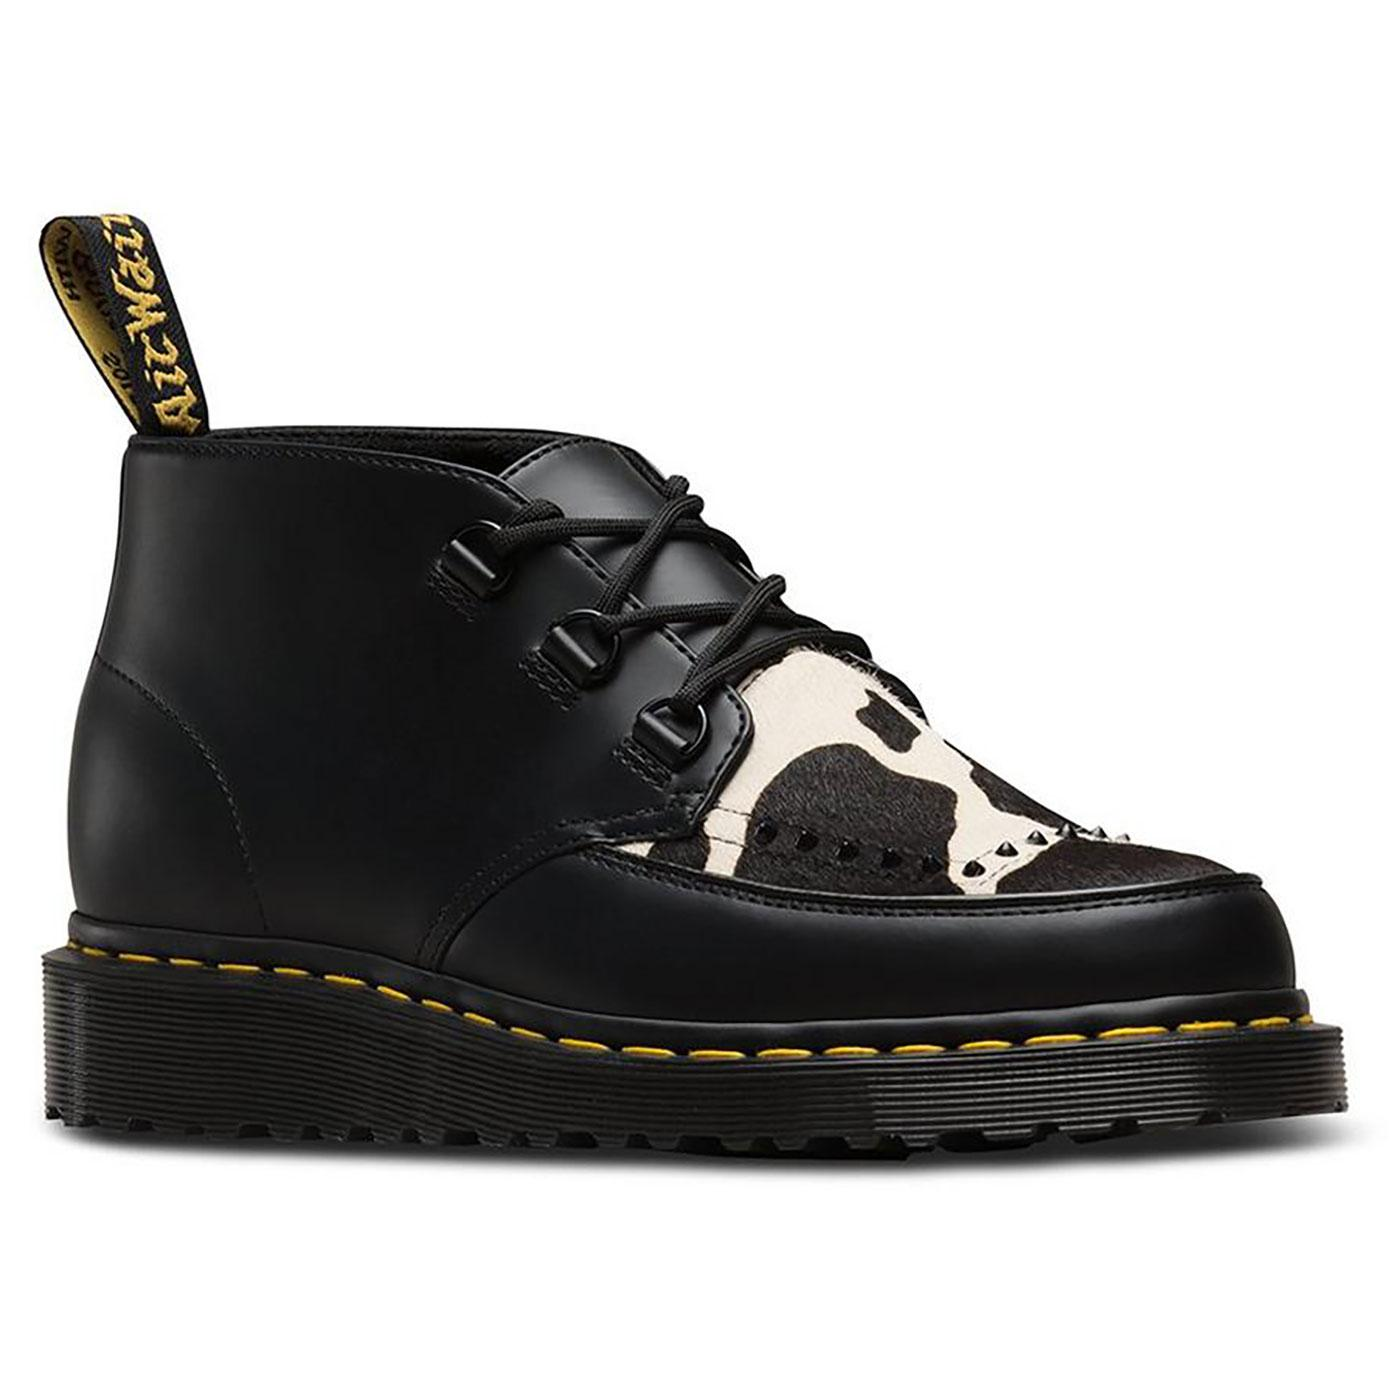 Ramsey Chukka DR MARTENS Cow Print Creeper Boots